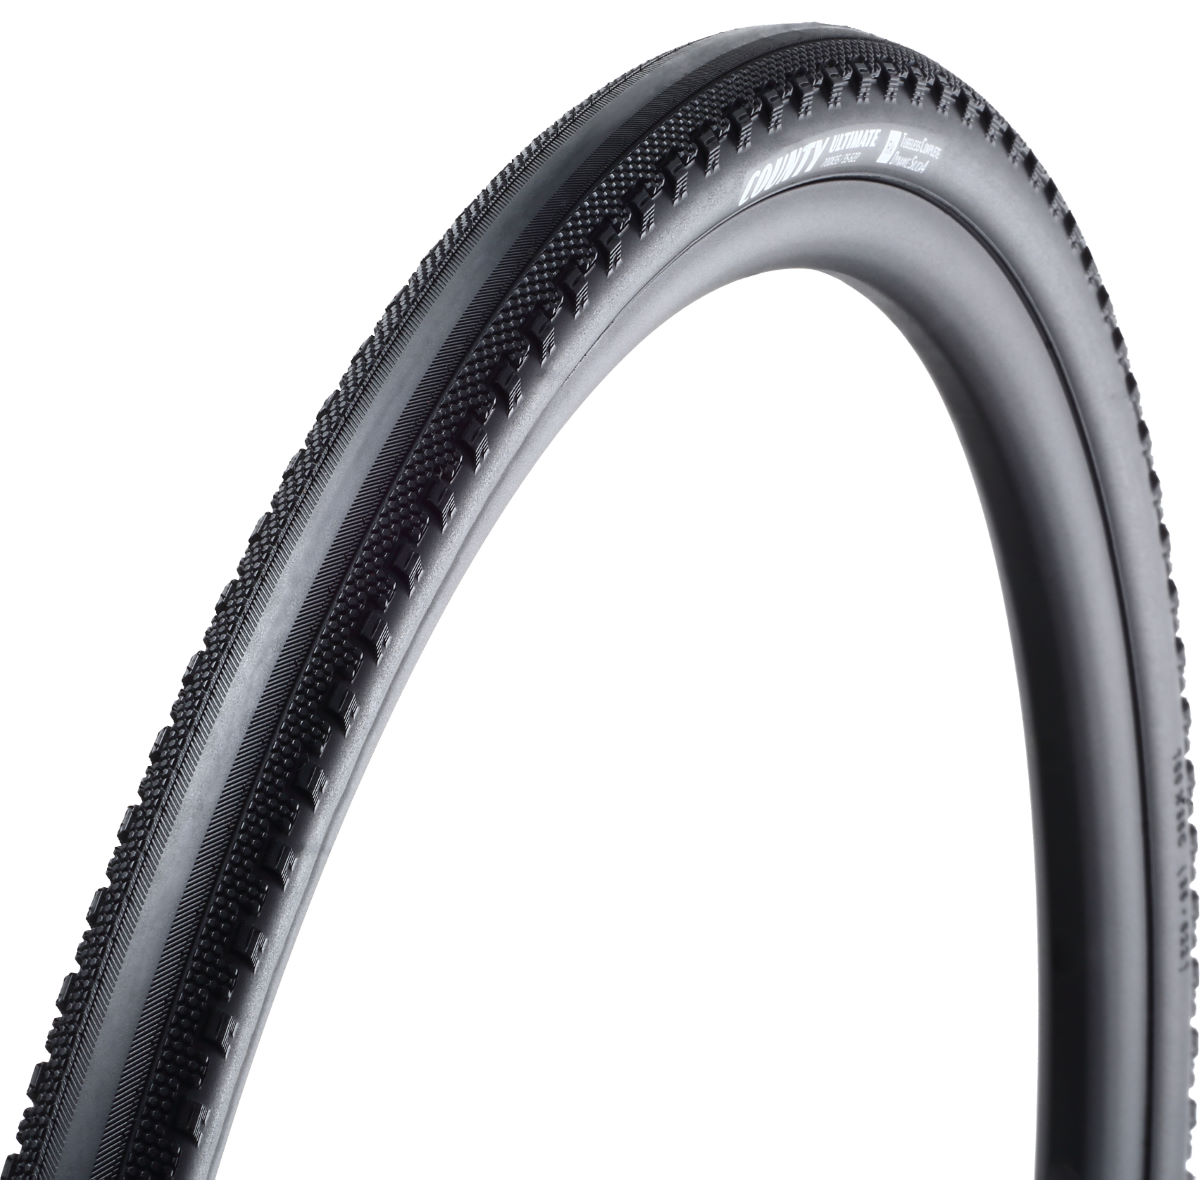 Goodyear County Premium Tubeless Cyclocross Tyre - Cubiertas